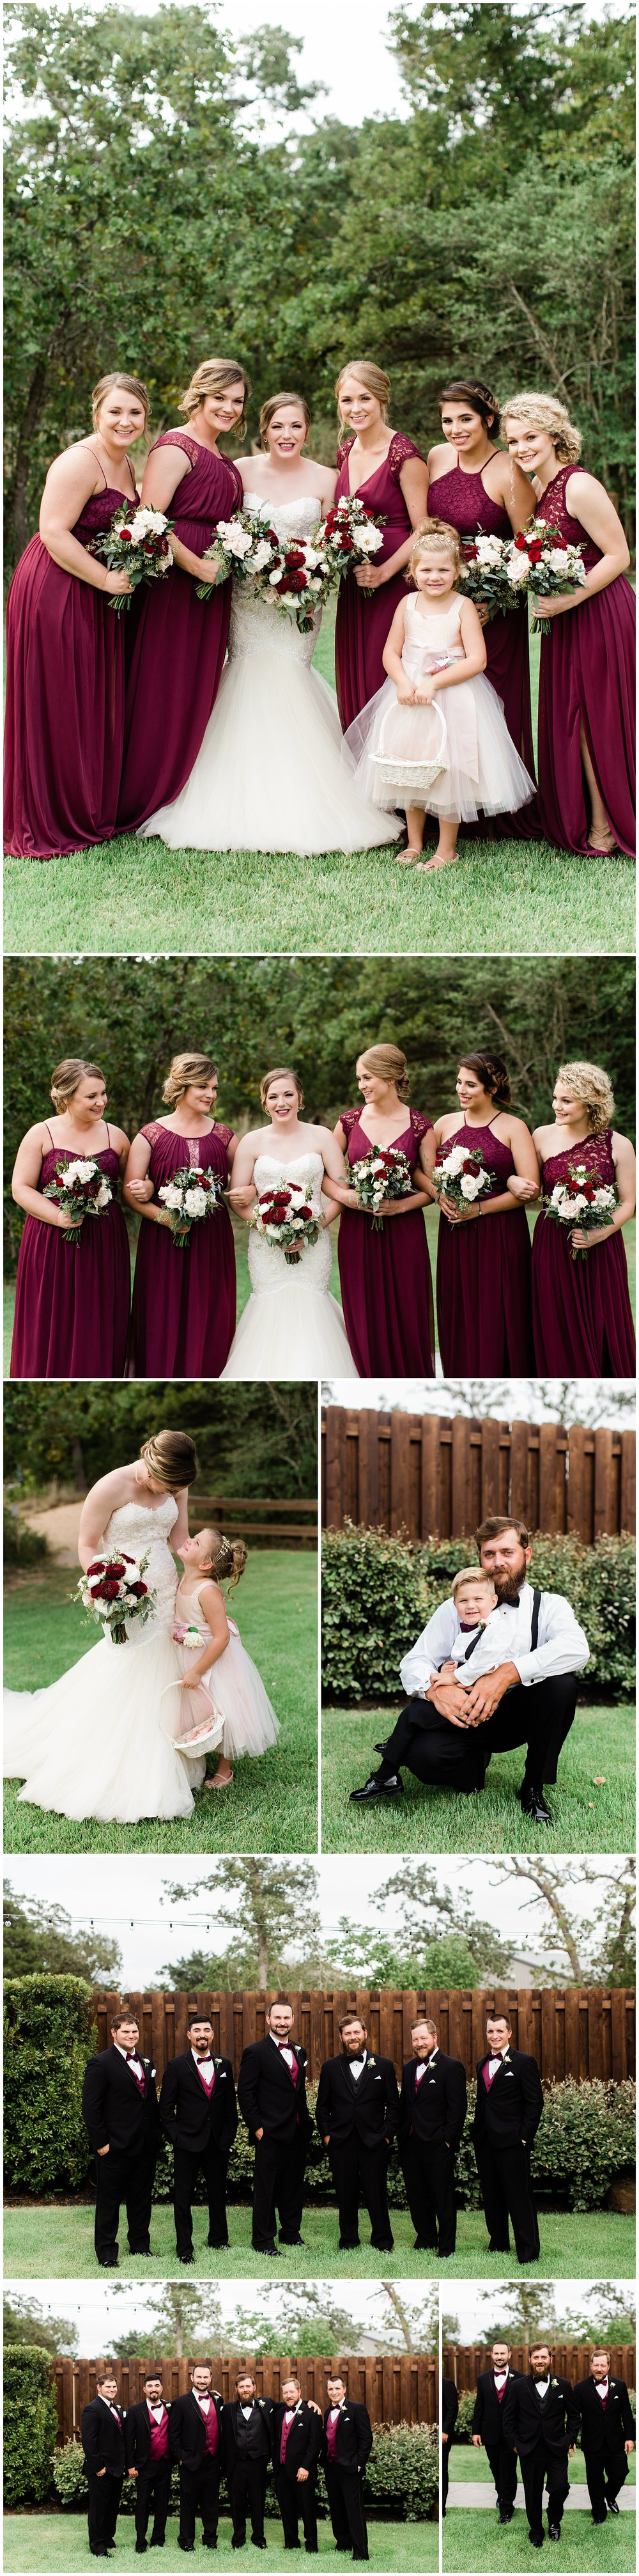 Peach_Creek_Ranch_Wedding_Kristina_Ross_Photography_0012.jpg